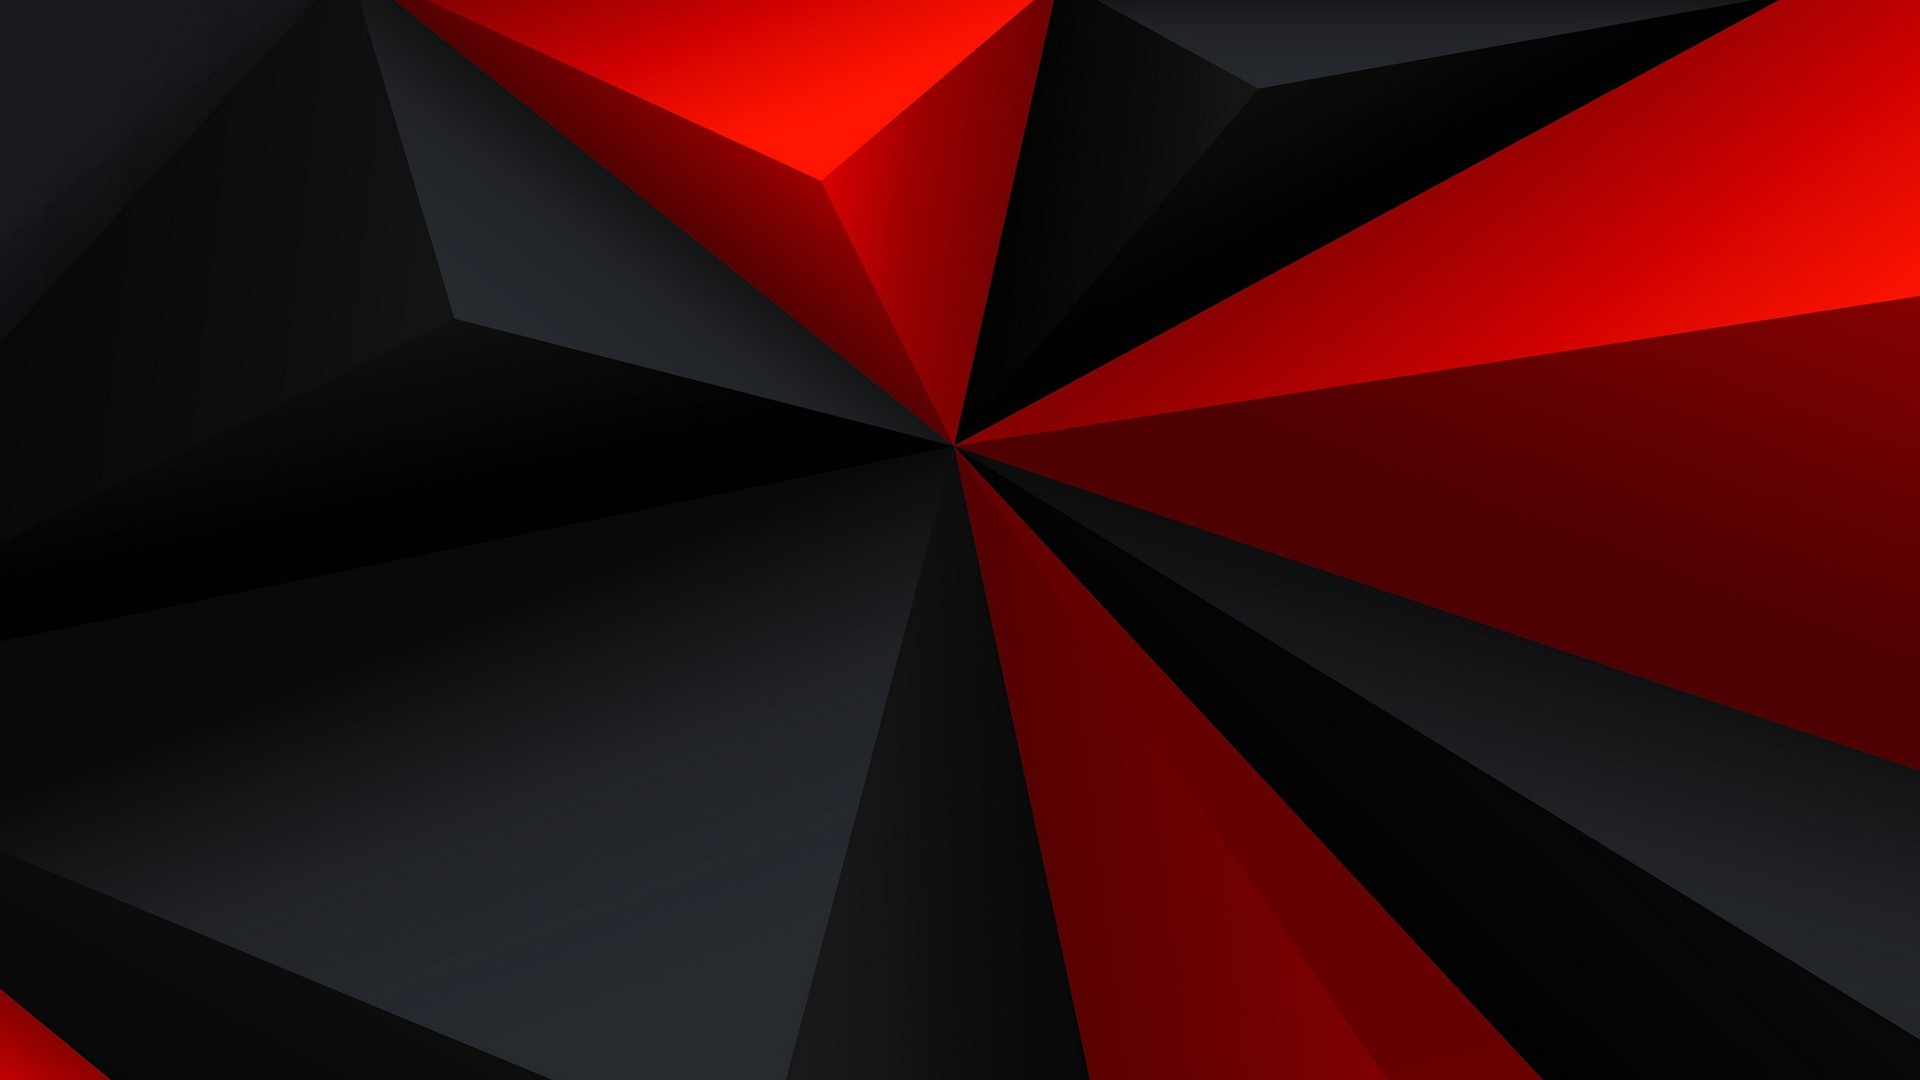 1920x1080 Red And Black Abstract Backgrounds - Wallpaper Cave